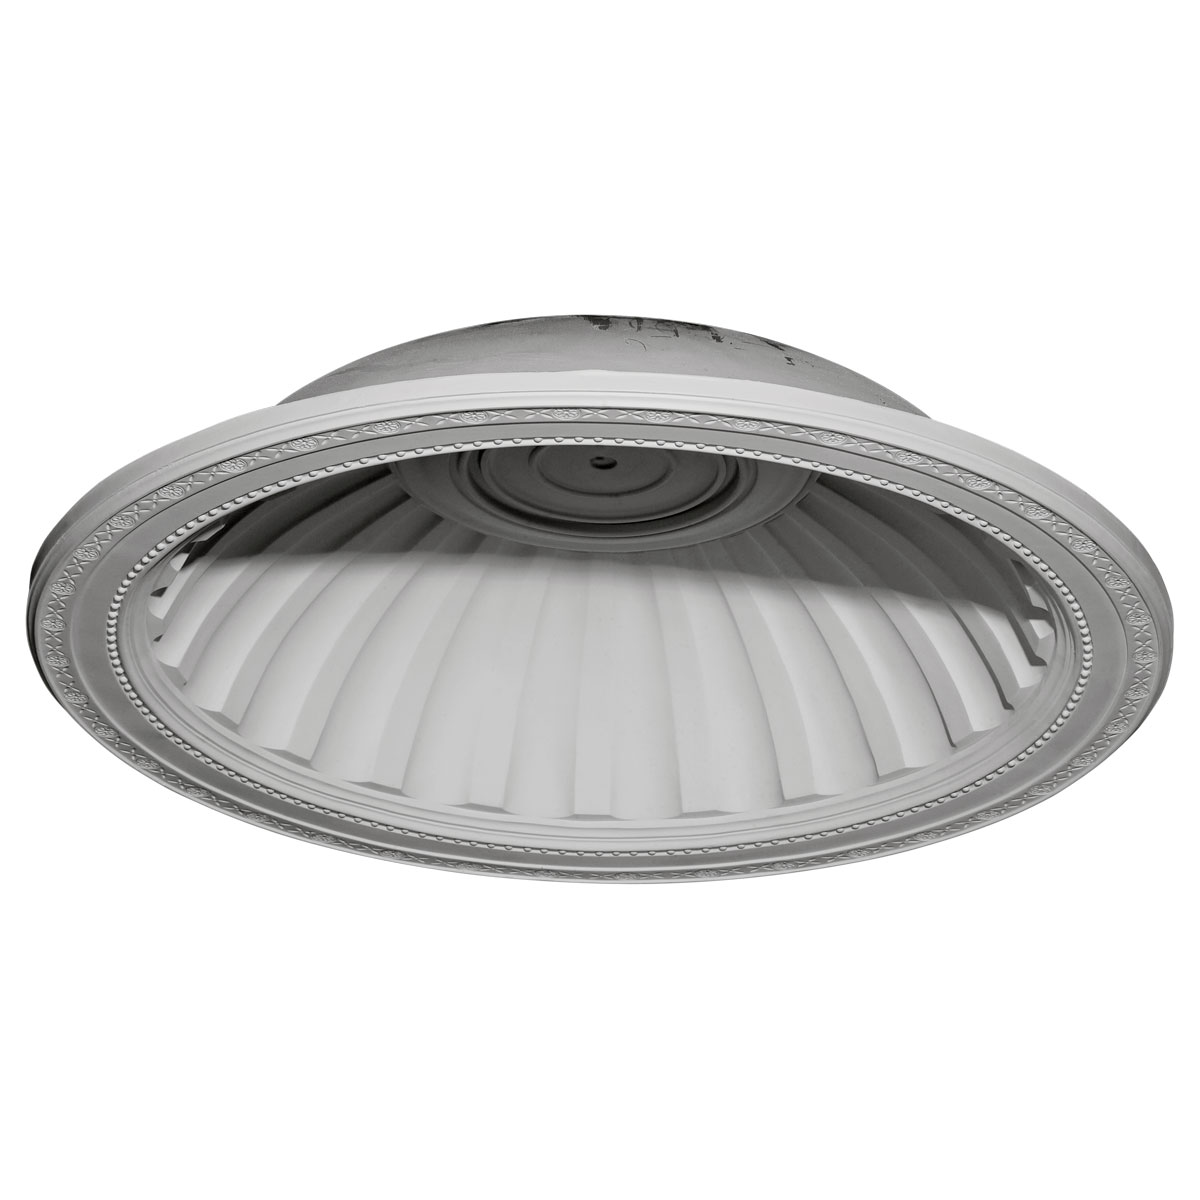 """DOME31MI 31-7/8""""OD x 25-1/8""""ID x 7-3/8""""D Milton Recessed Mount Ceiling Dome (25-1/8""""Diameter x 6-7/8""""D Rough Opening)"""